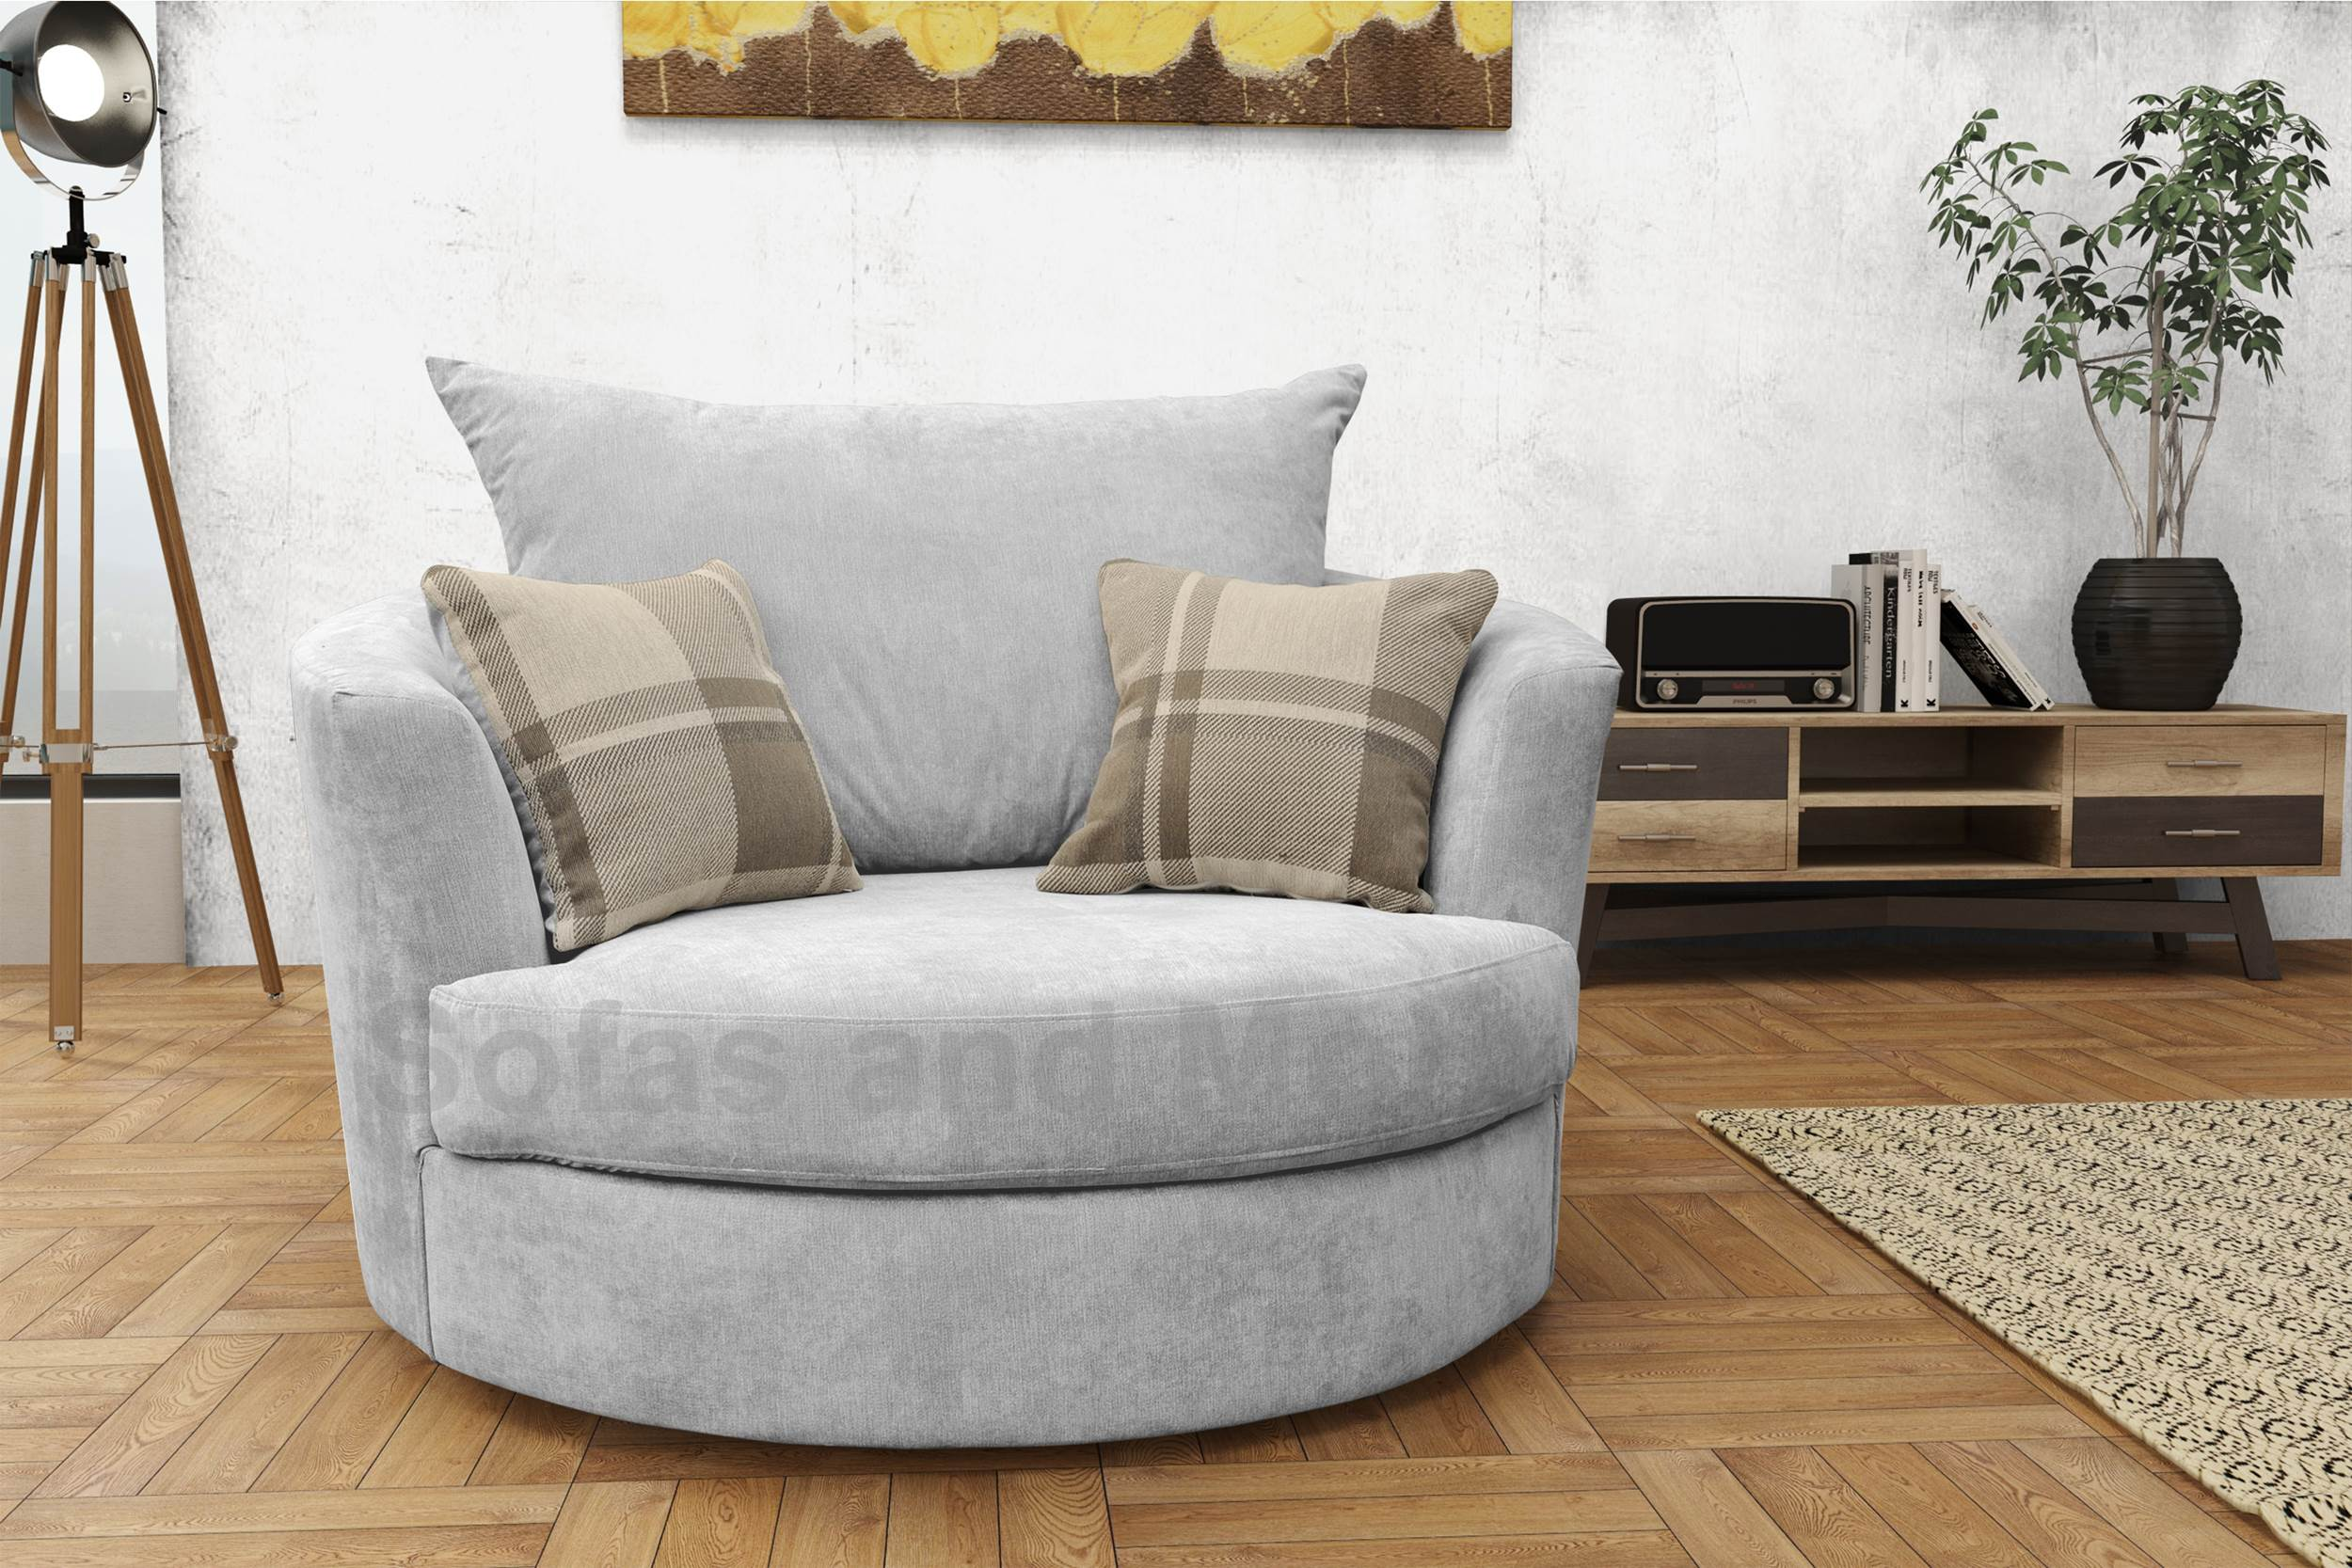 Large Swivel Round Cuddle Chair Fabric Grey Cream Brown Living Room Settee Ebay